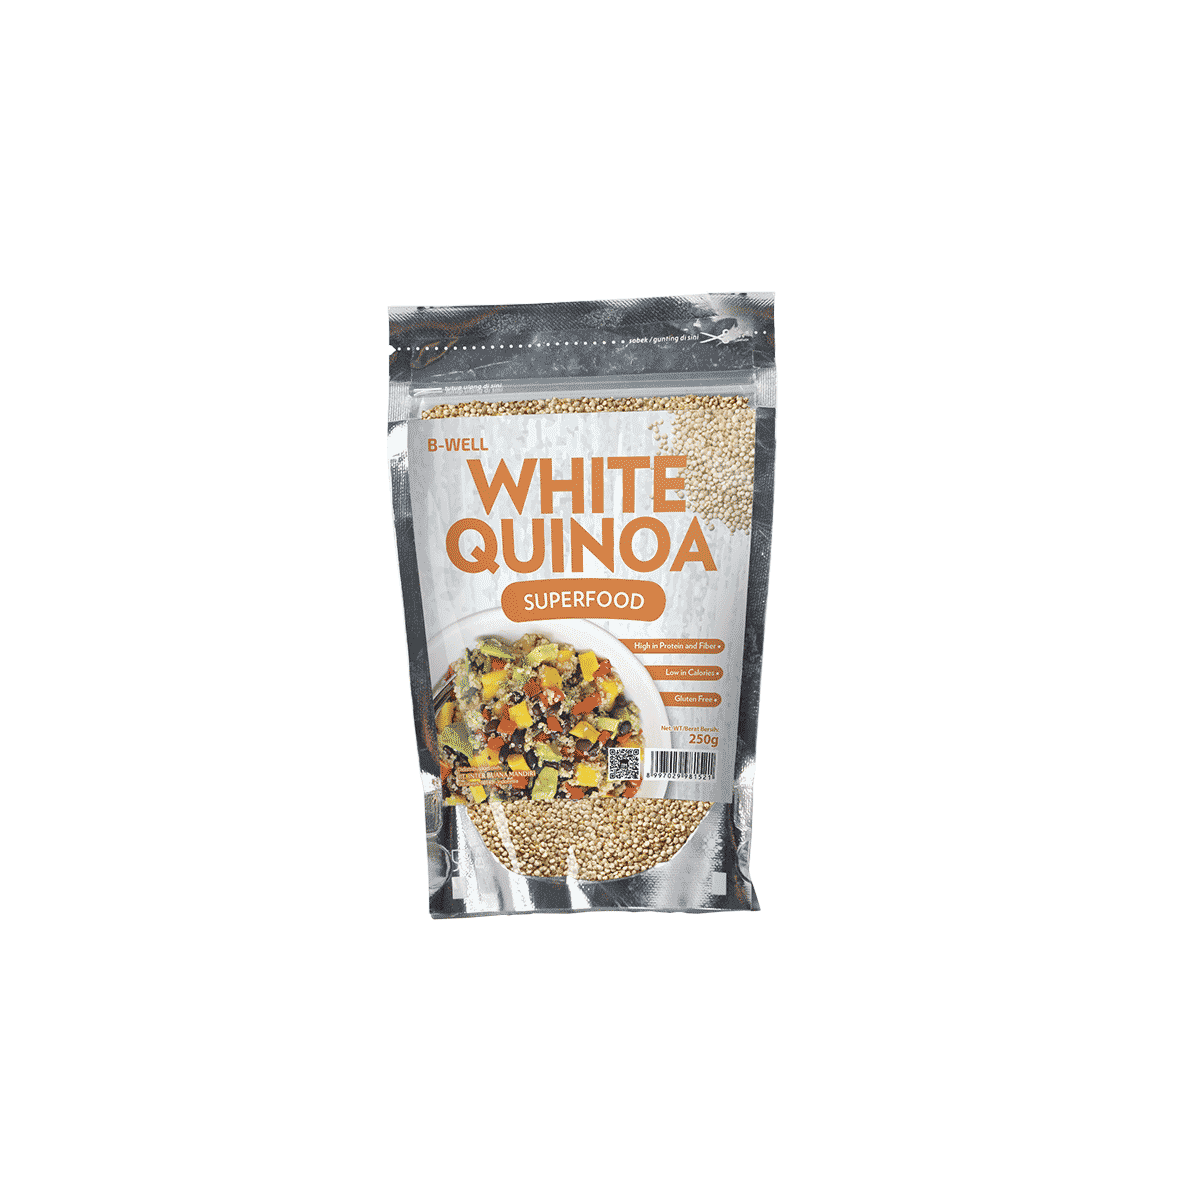 B-Well White Quinoa Superfood Inter Buana Mandiri